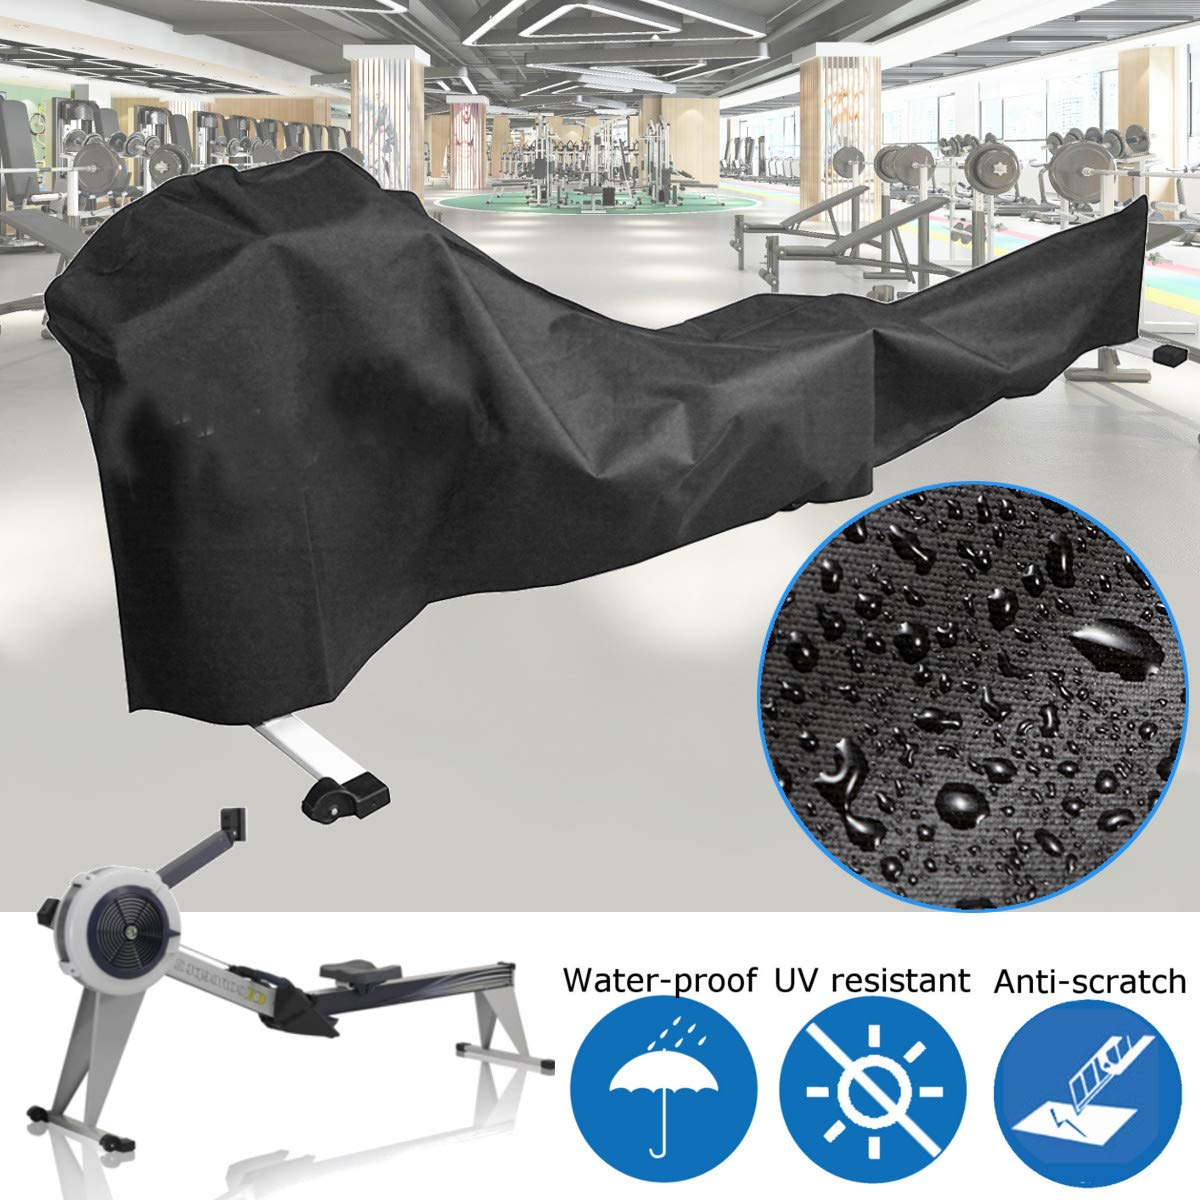 dDanke Black Rowing Machine Cover Sports Equipment Dust Covers for Outside Weather Rain & Sunshine Resistance 285x51x89cm